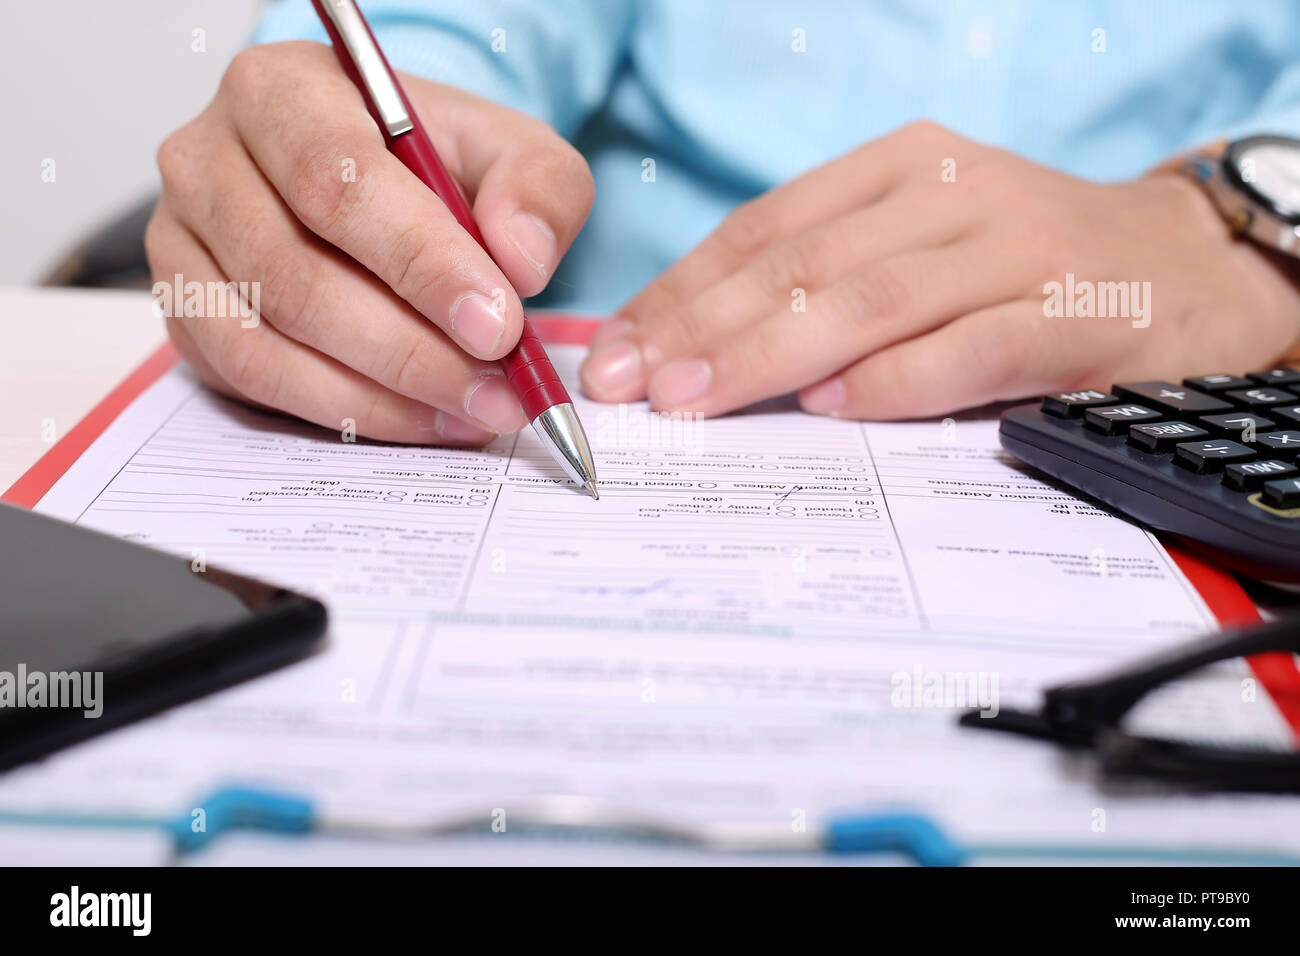 Man is filling form with pen. Picture of clipboard, form, glasses, calculator and phone. Stock Photo